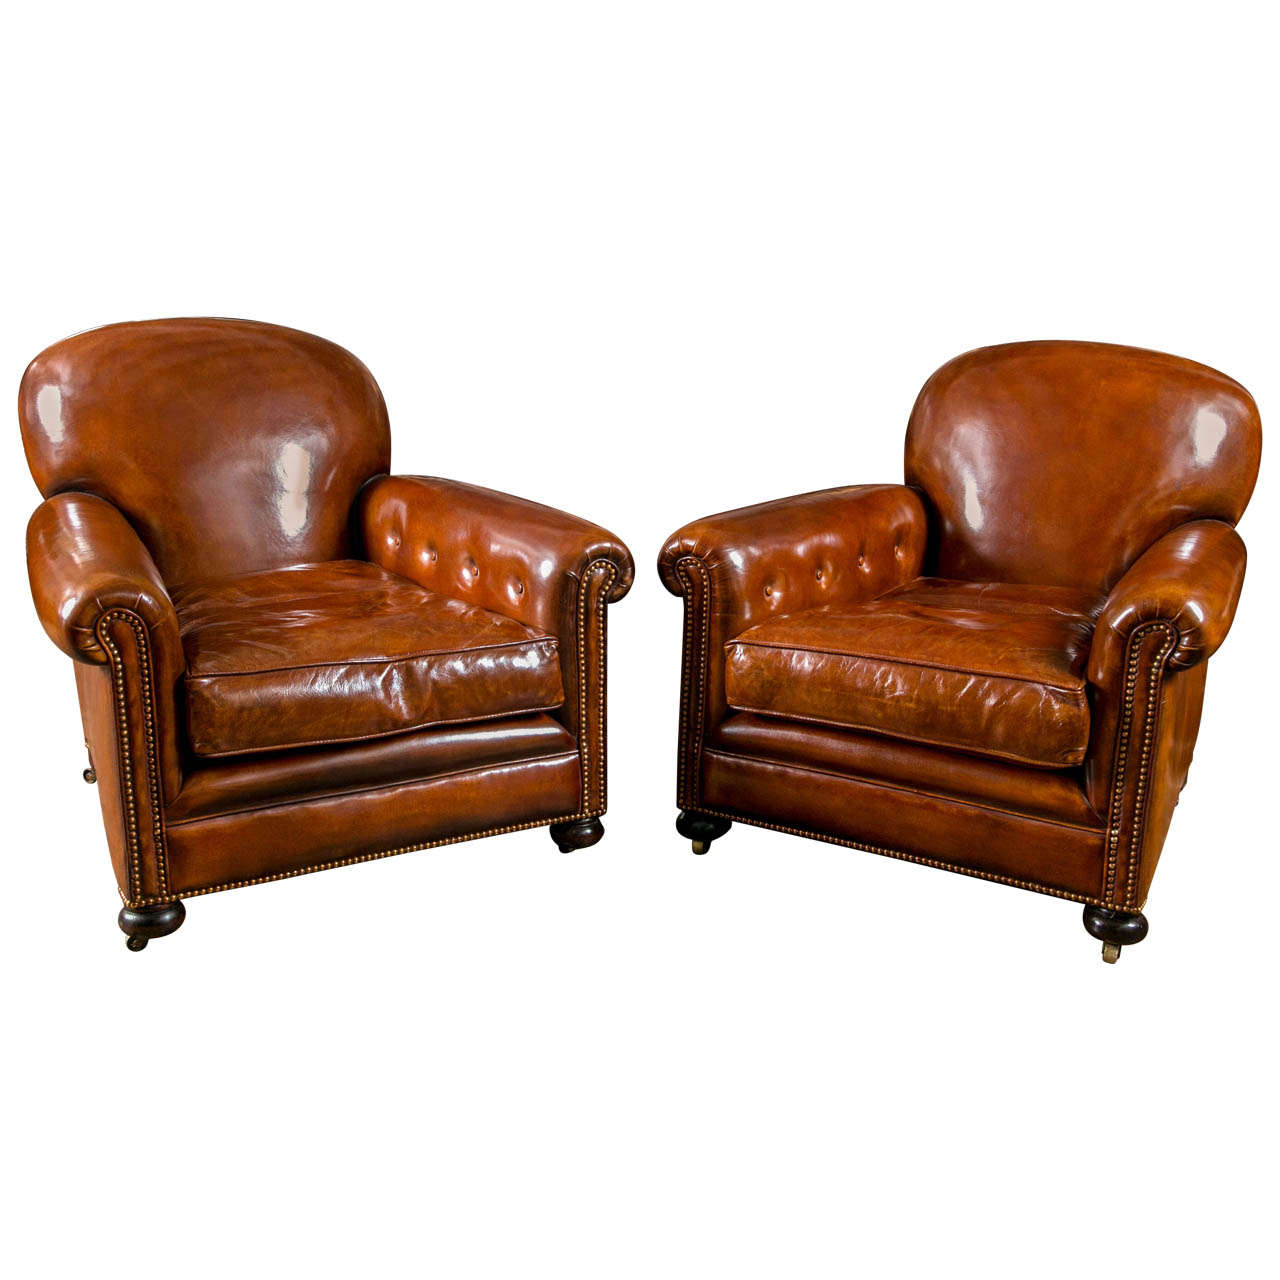 French Leather Club Chairs For Sale At 1stdibs